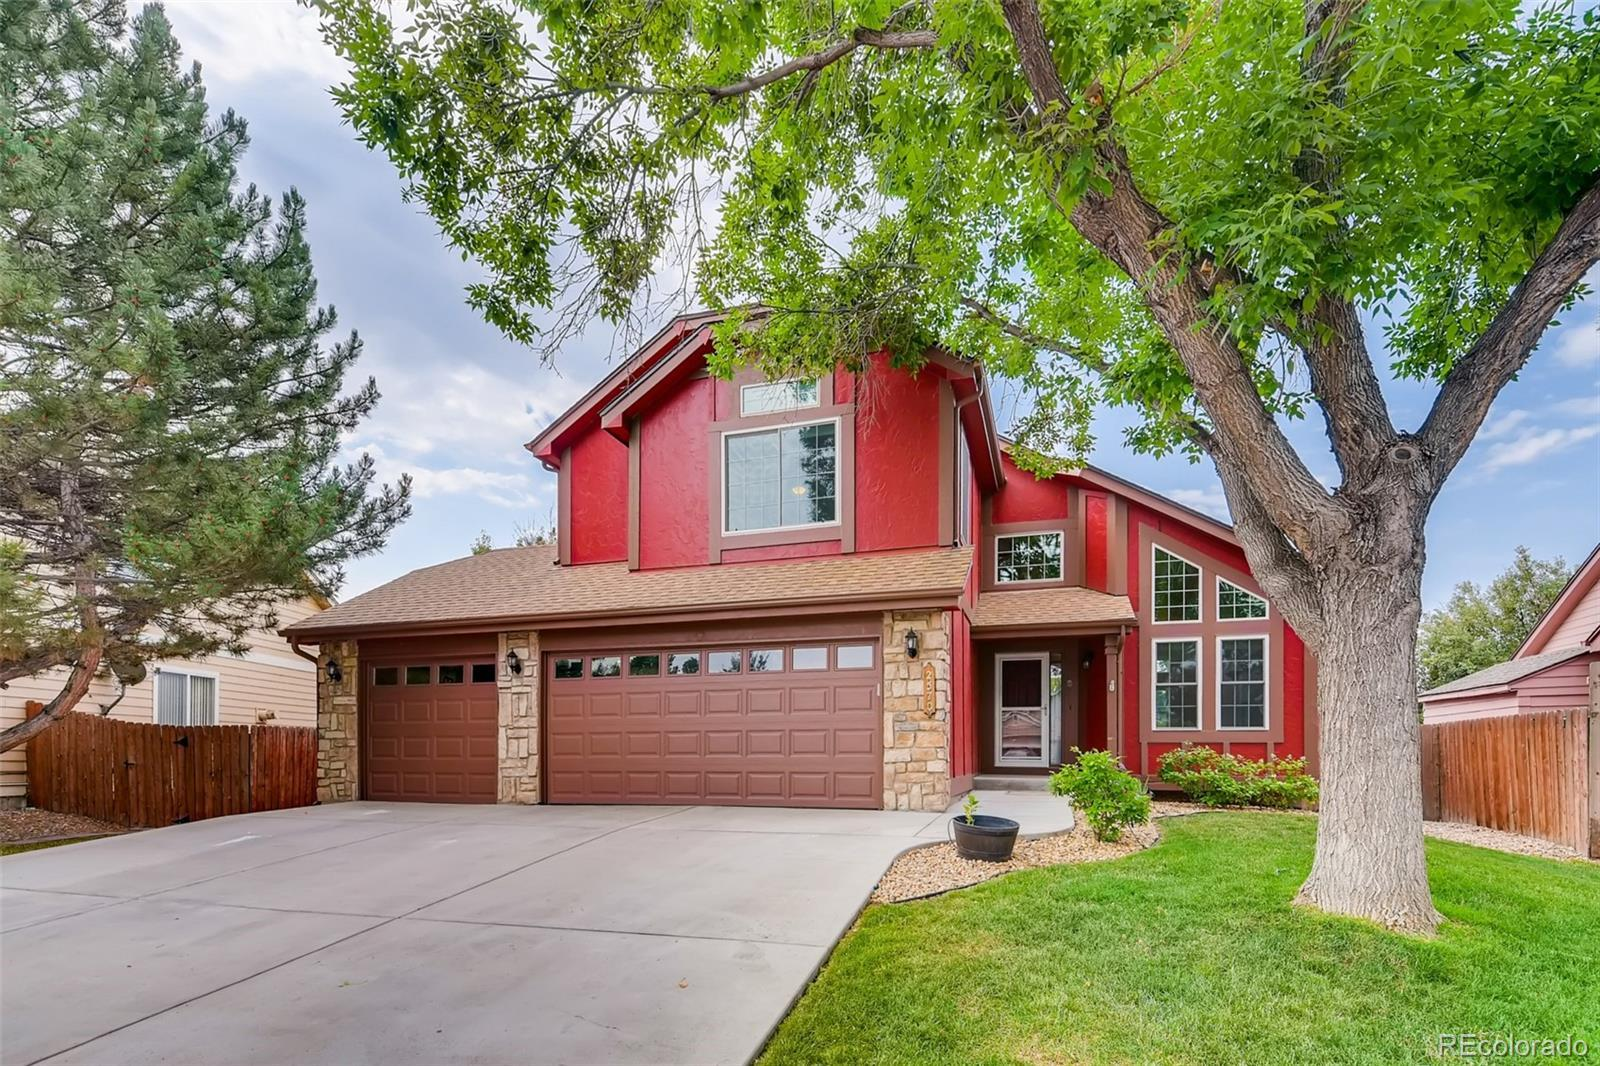 2570 W 109th Avenue, Westminster, CO 80234 - #: 2557157